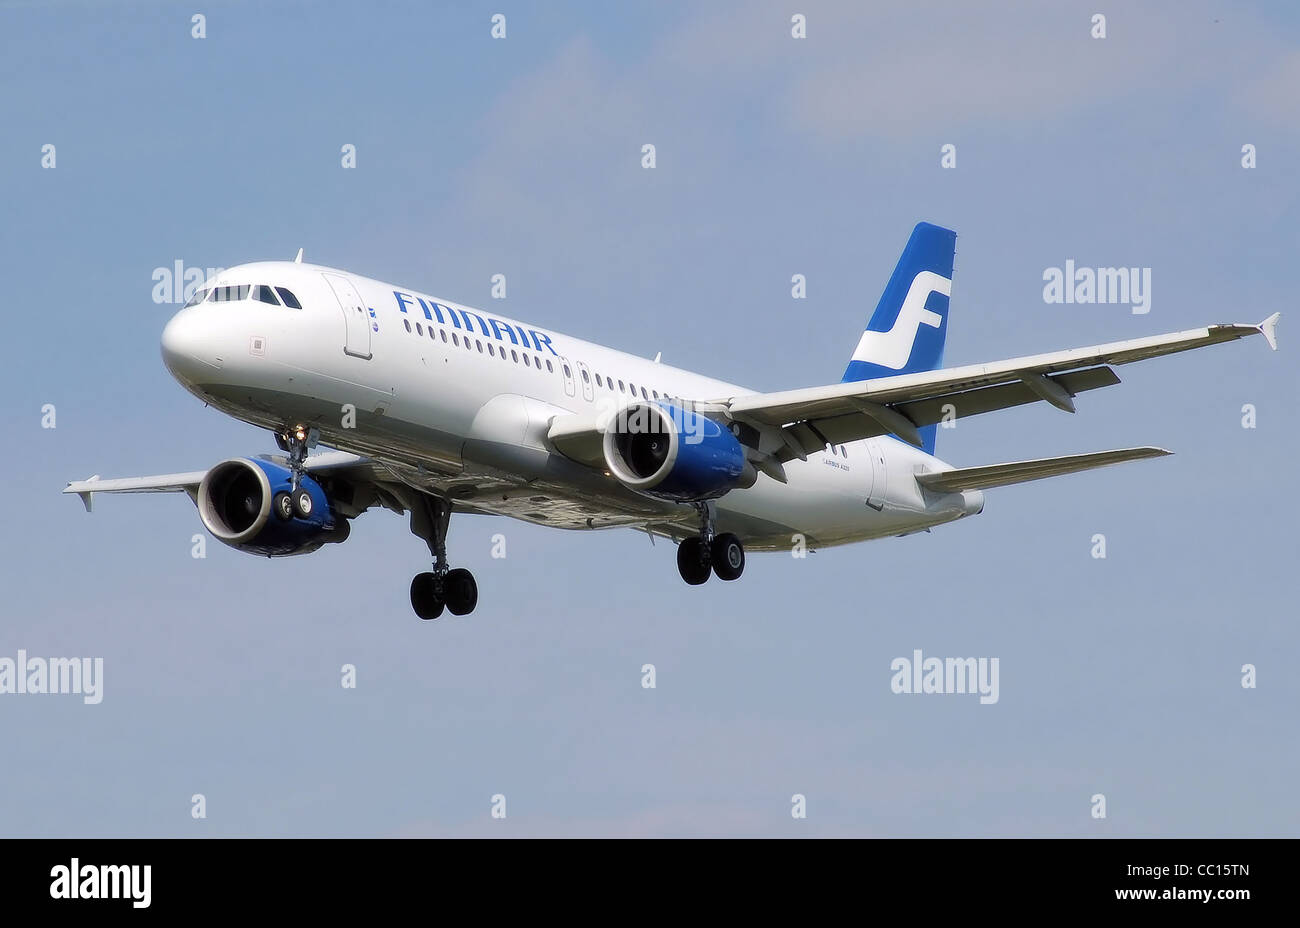 Finnair Airbus A320 landing at London Heathrow Airport. - Stock Image